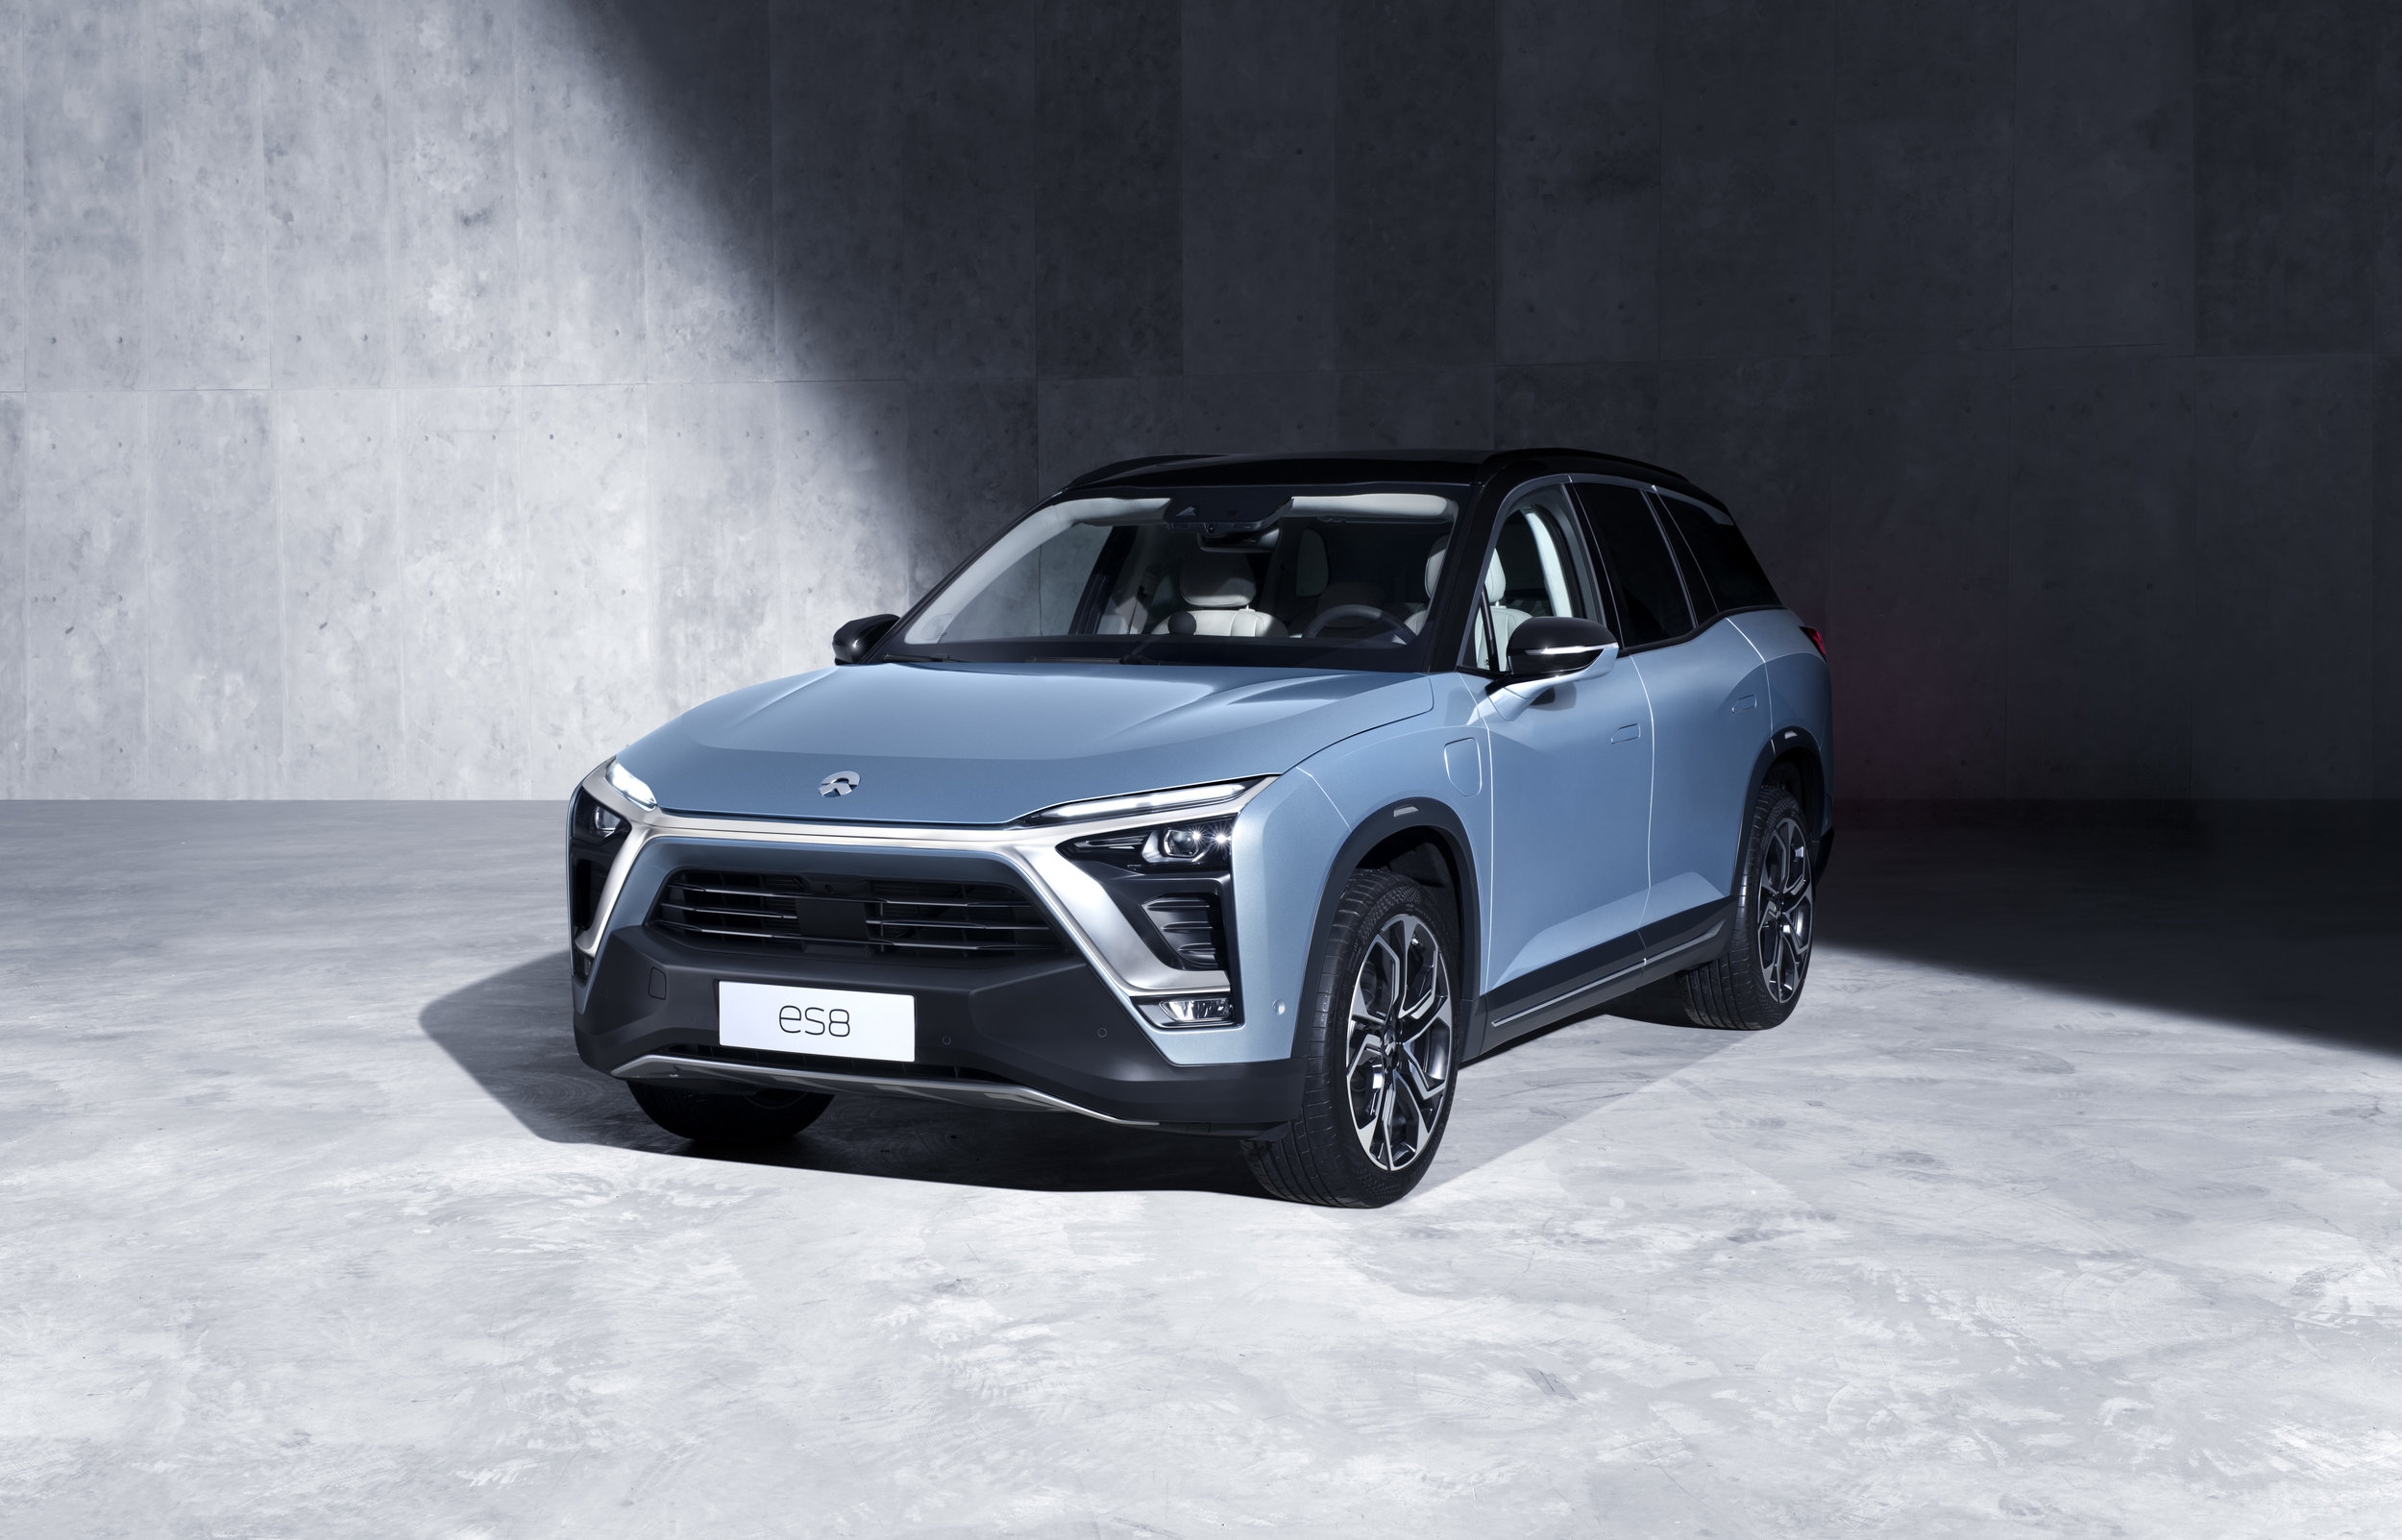 Off Ramp We Drive The 643 Hp Electric Nio Es8 Suv Leasehackr